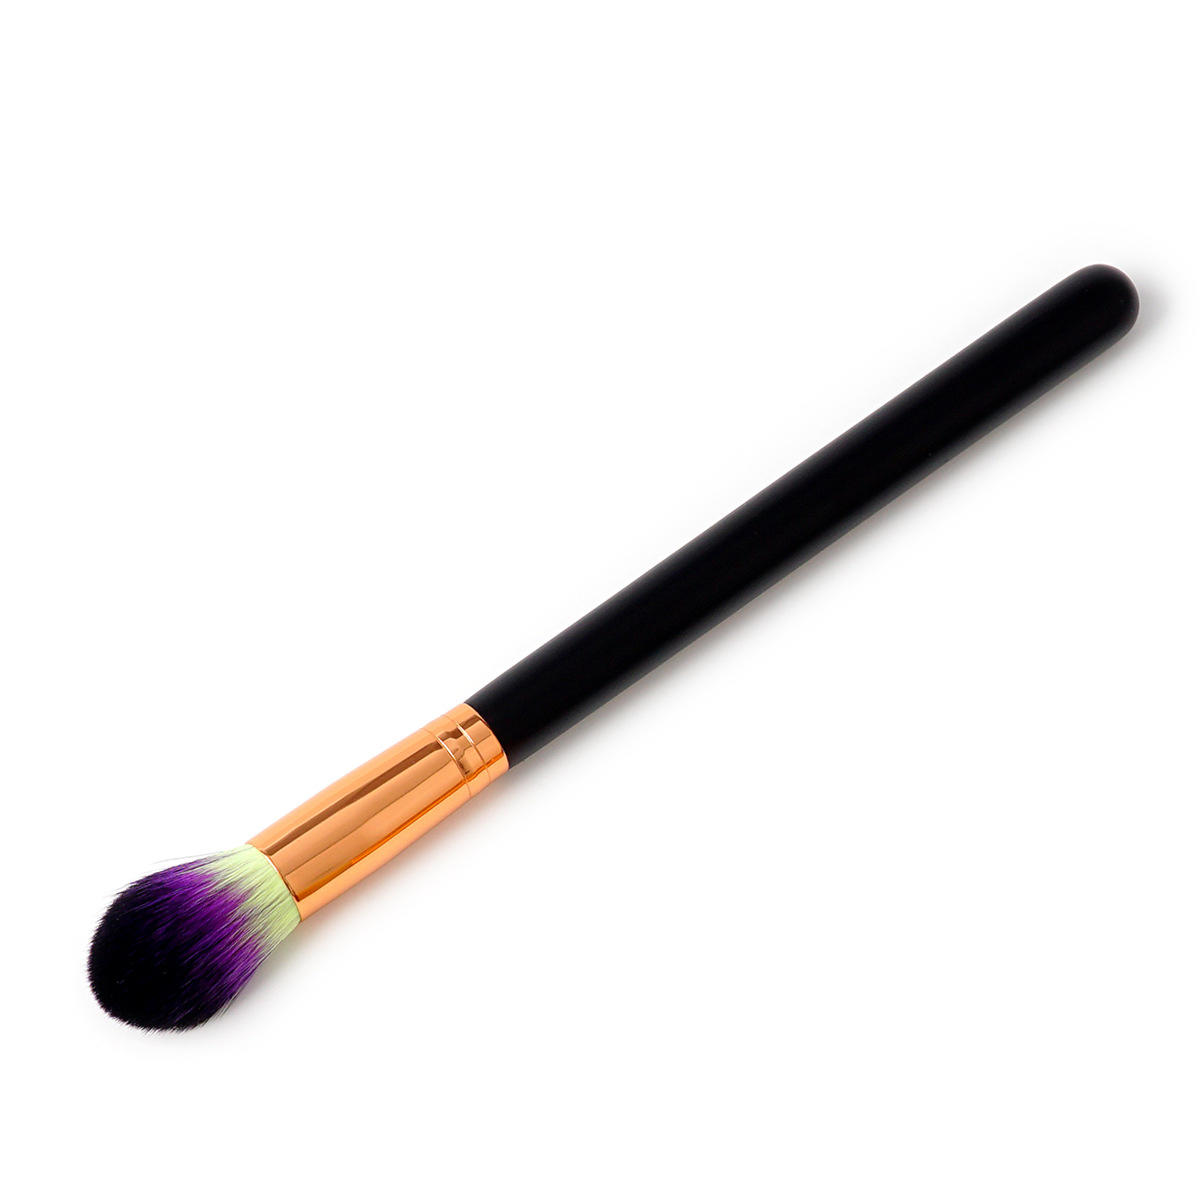 Professional private label makeup brush duo sided eyeshadow brush set